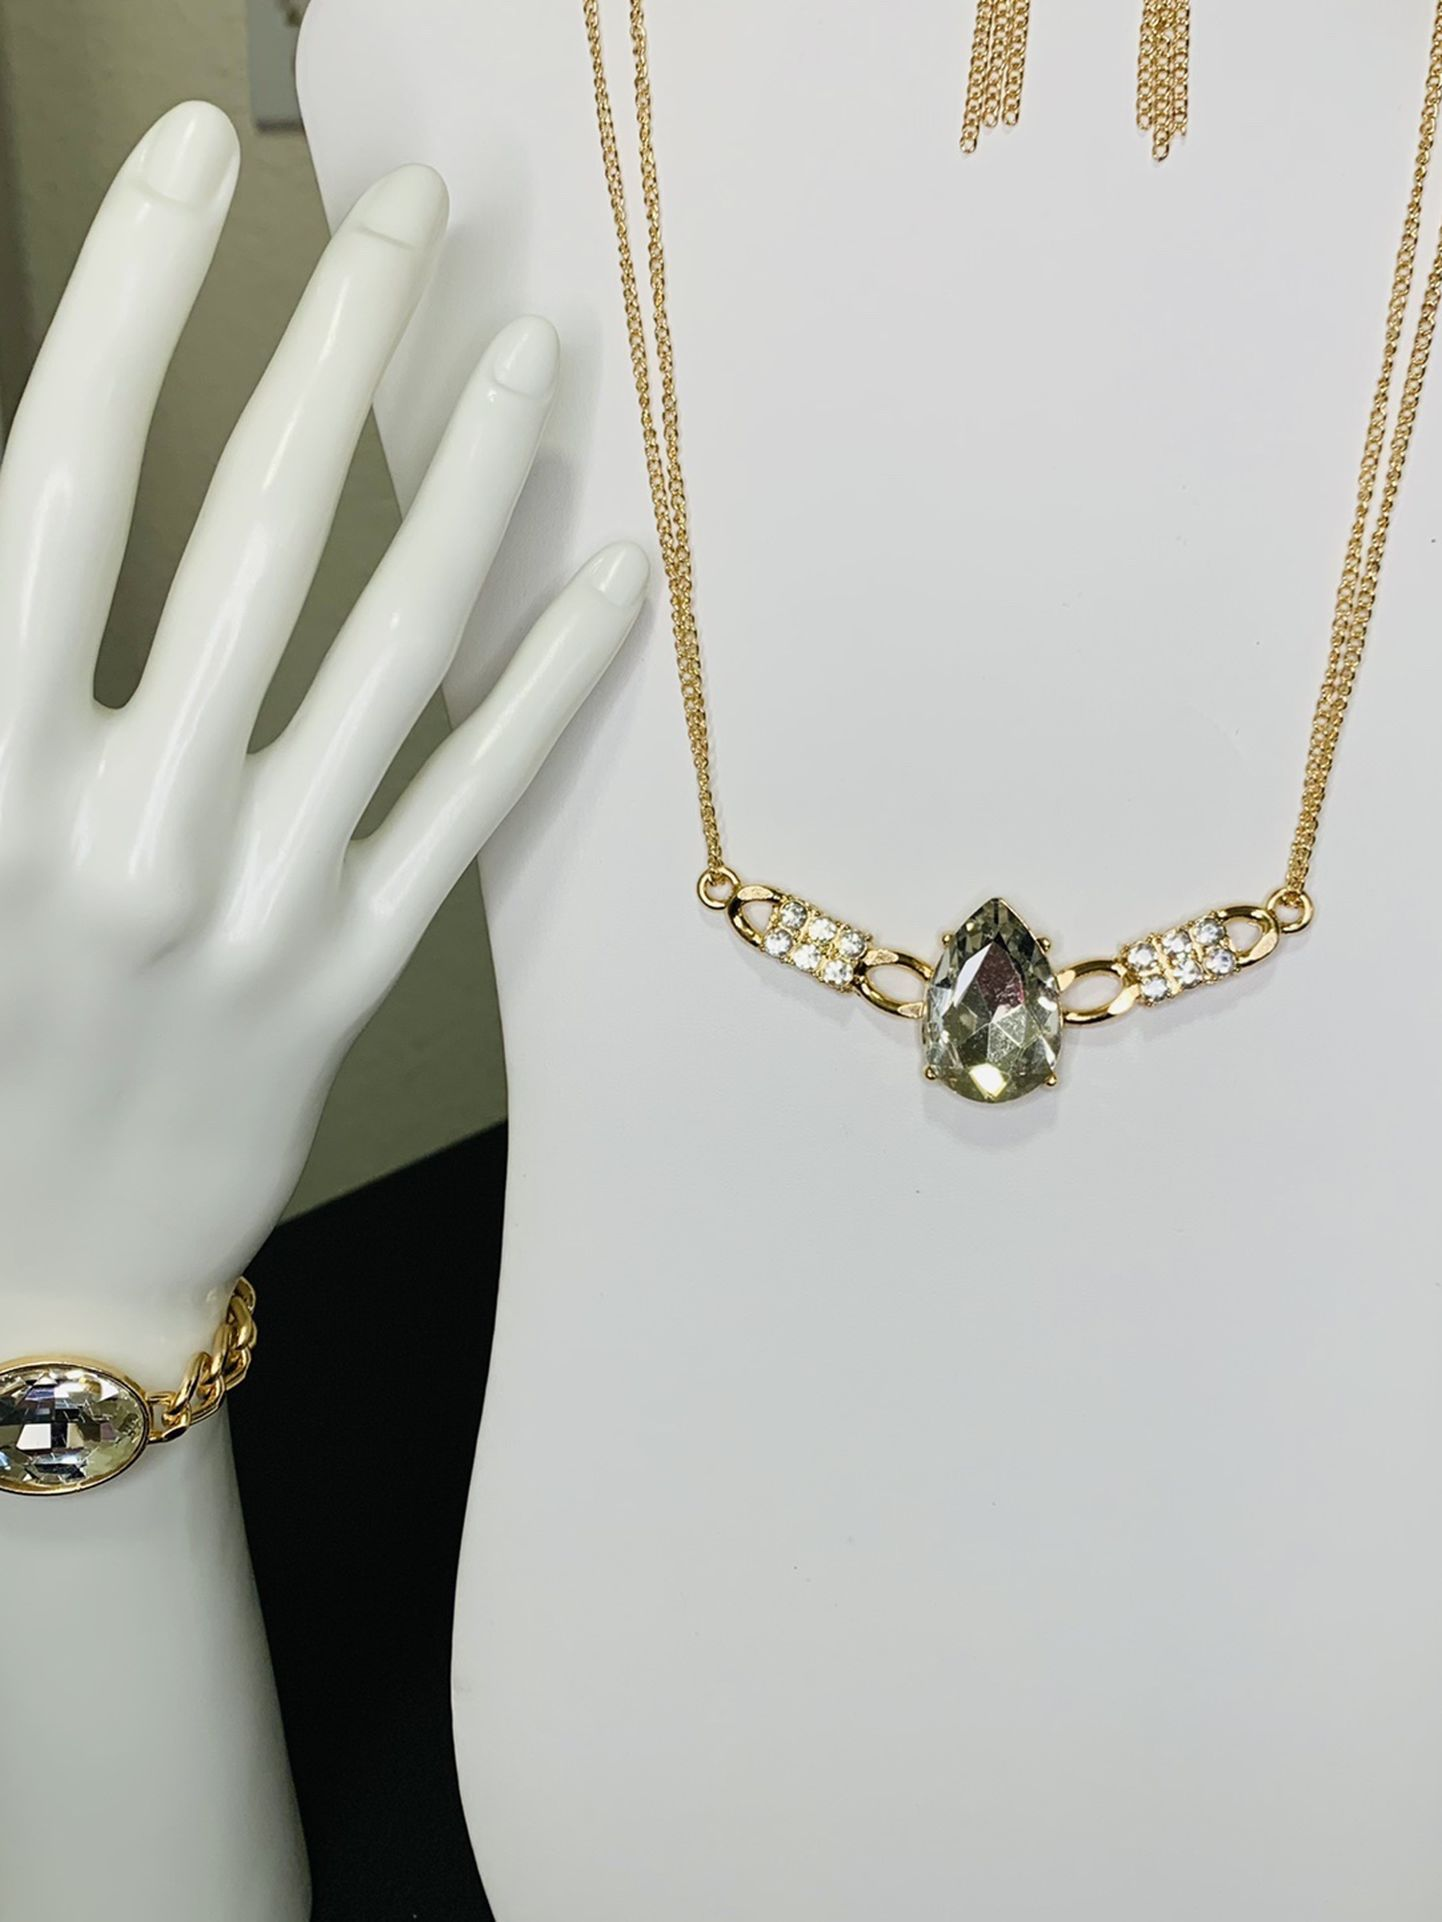 2- piece Set beautiful fine jewelry does not give you allergy, free of lead and nickel ..Hablo Español